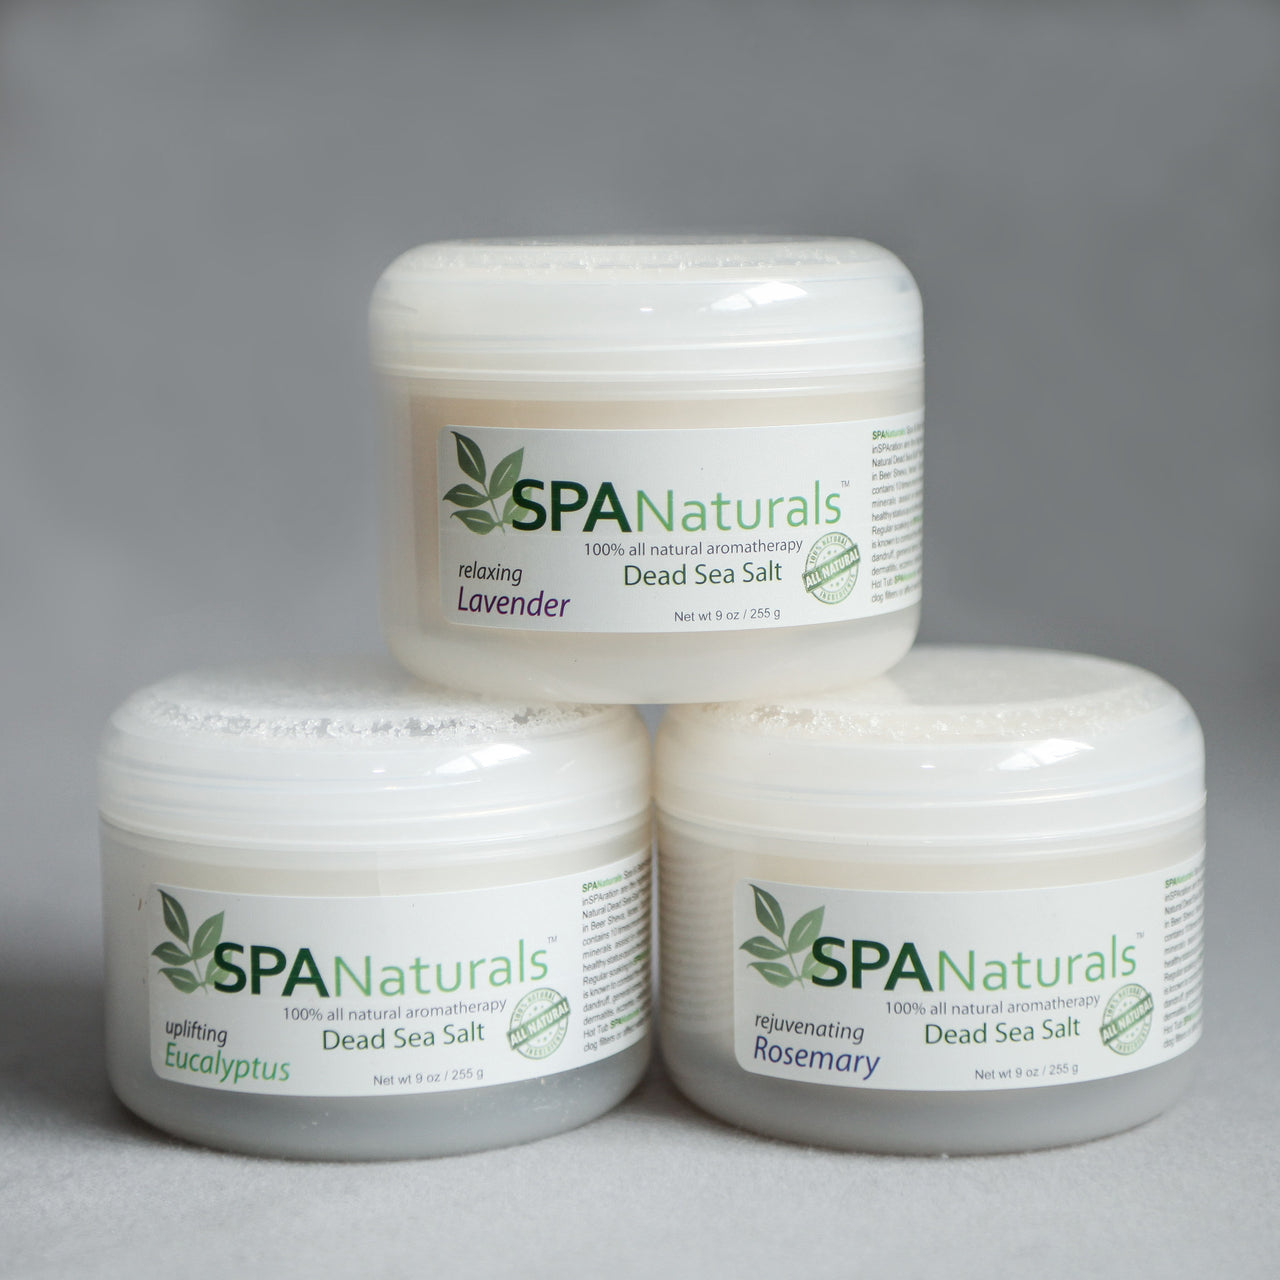 SPA Naturals Dead Sea Salt